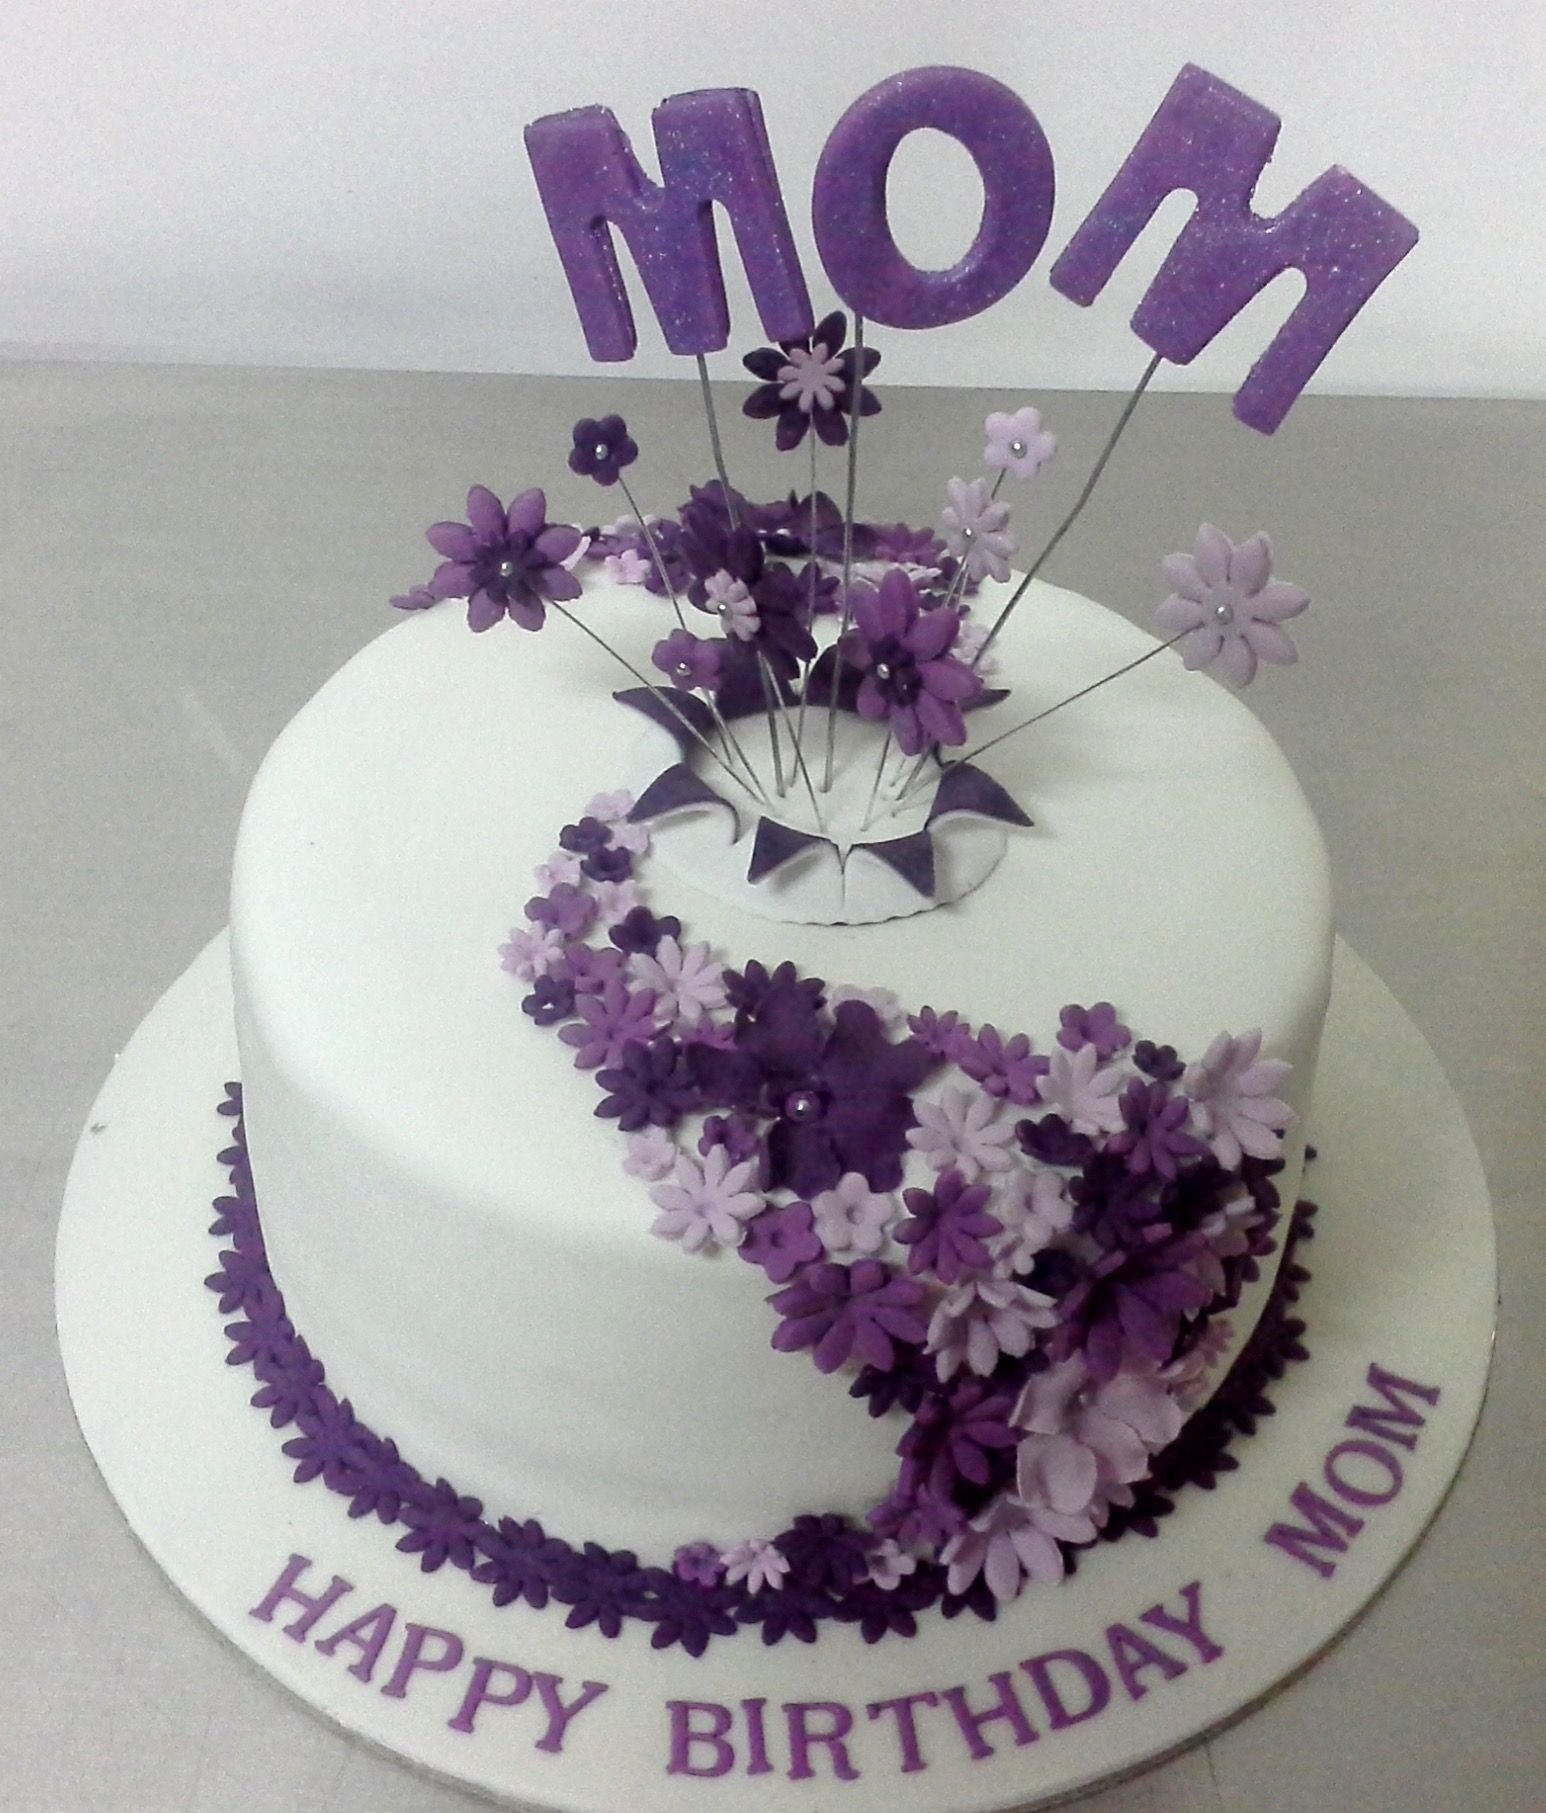 10 Fashionable Birthday Cake Ideas For Mom image result for 60th birthday cake ideas for mom cakes and candy